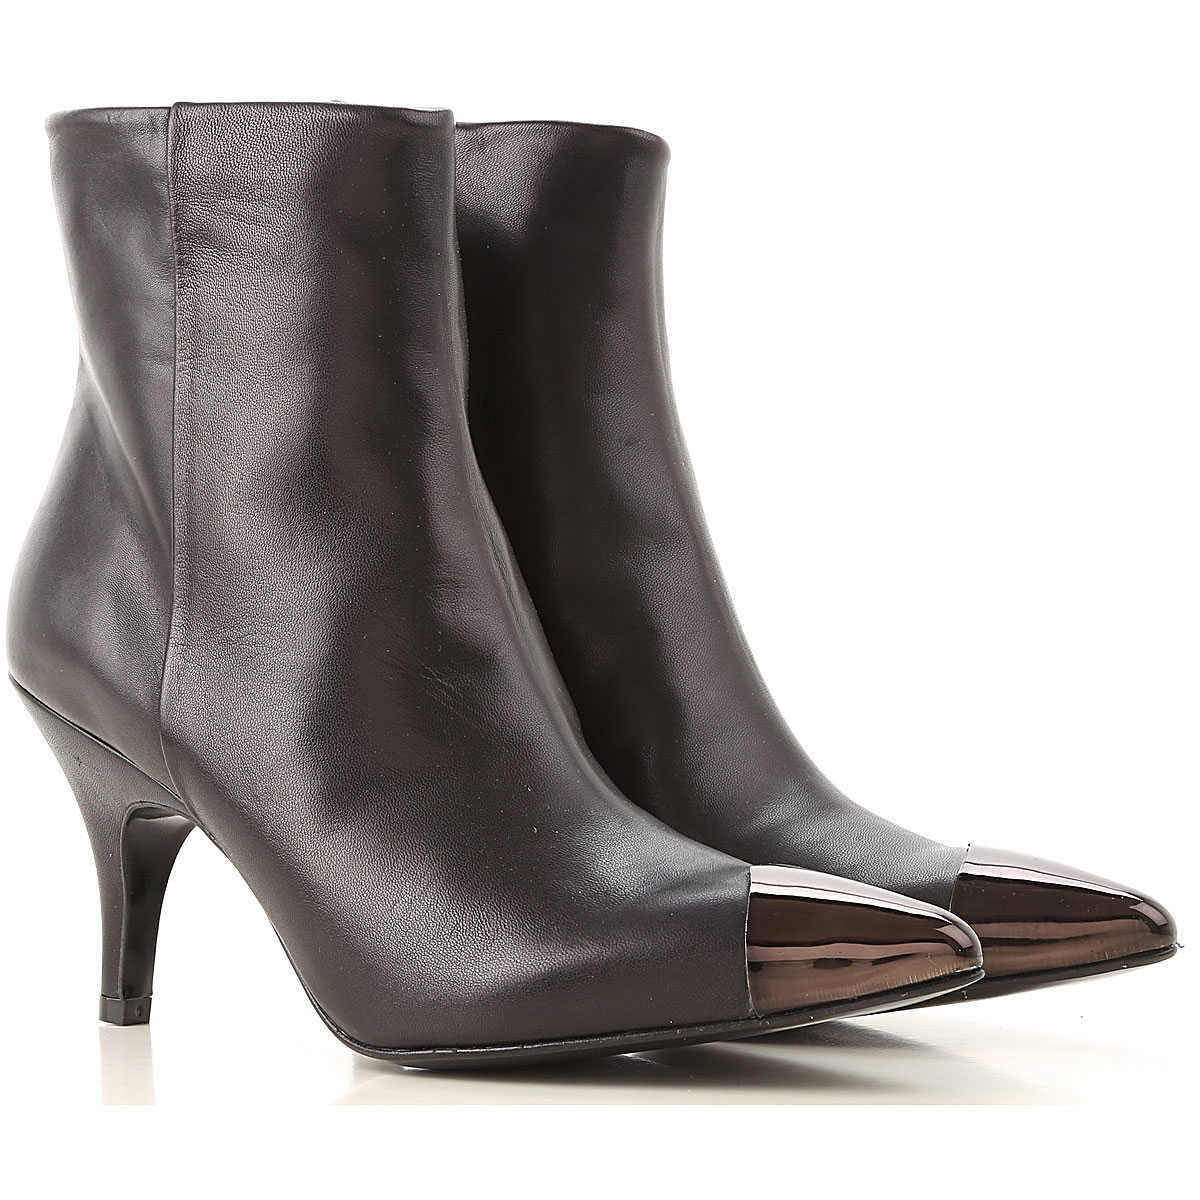 Kendall Kylie Boots for Women 3 4 4.5 5.5 6 Booties On Sale UK - GOOFASH